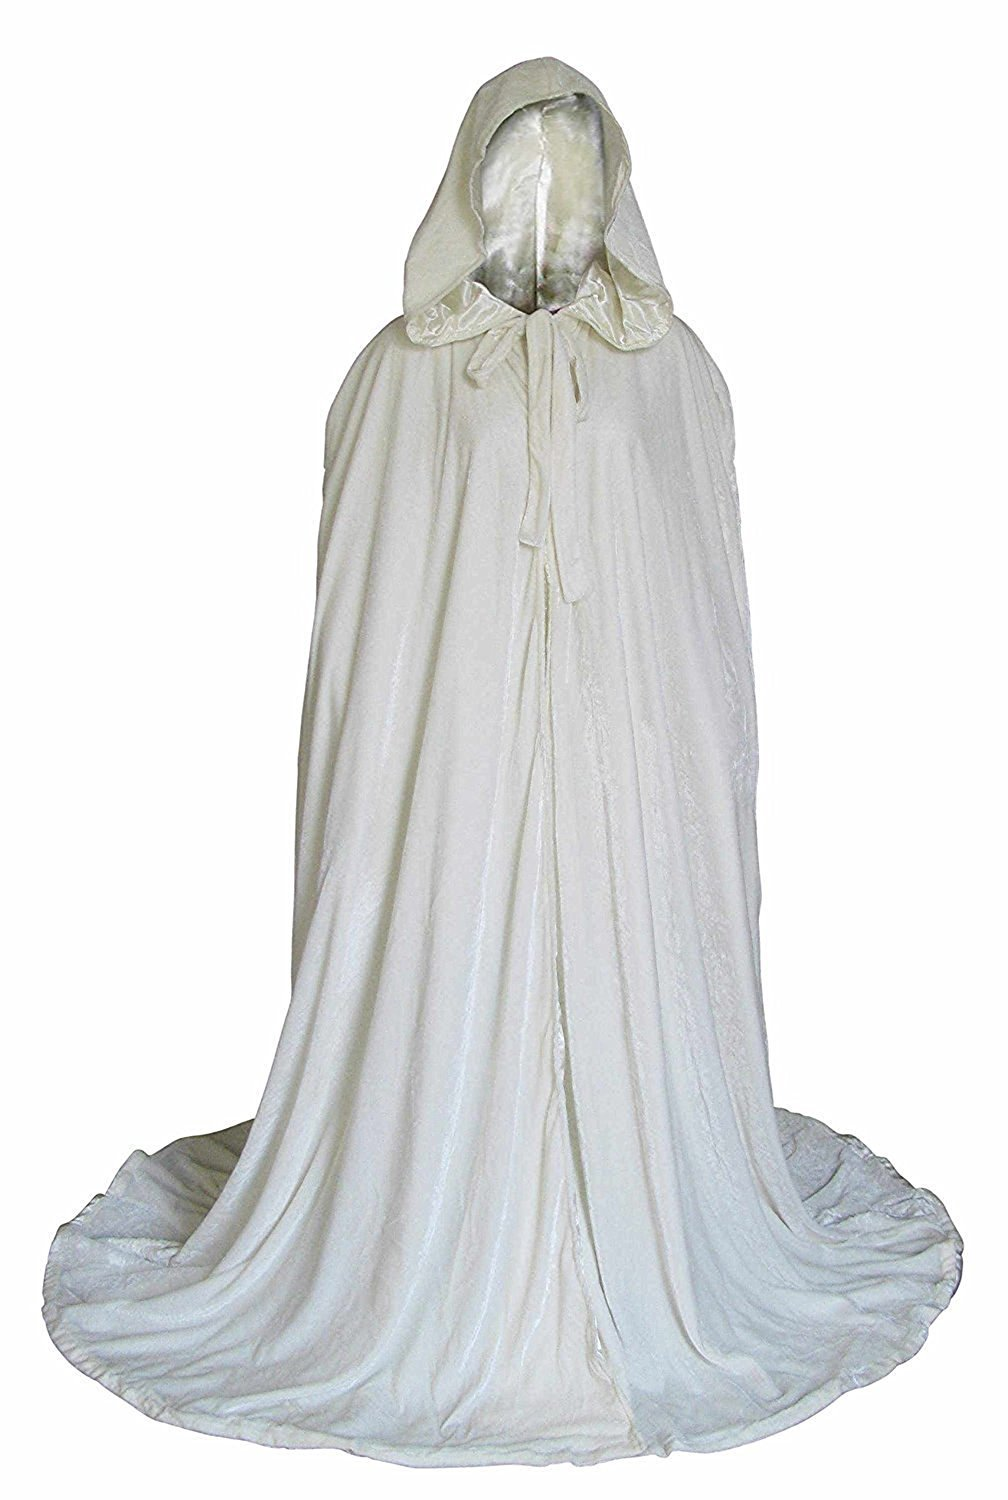 Aorme Halloween Hooded Cloaks Medieval Costumes Cosplay Wedding Capes Robe (X-Large, White)